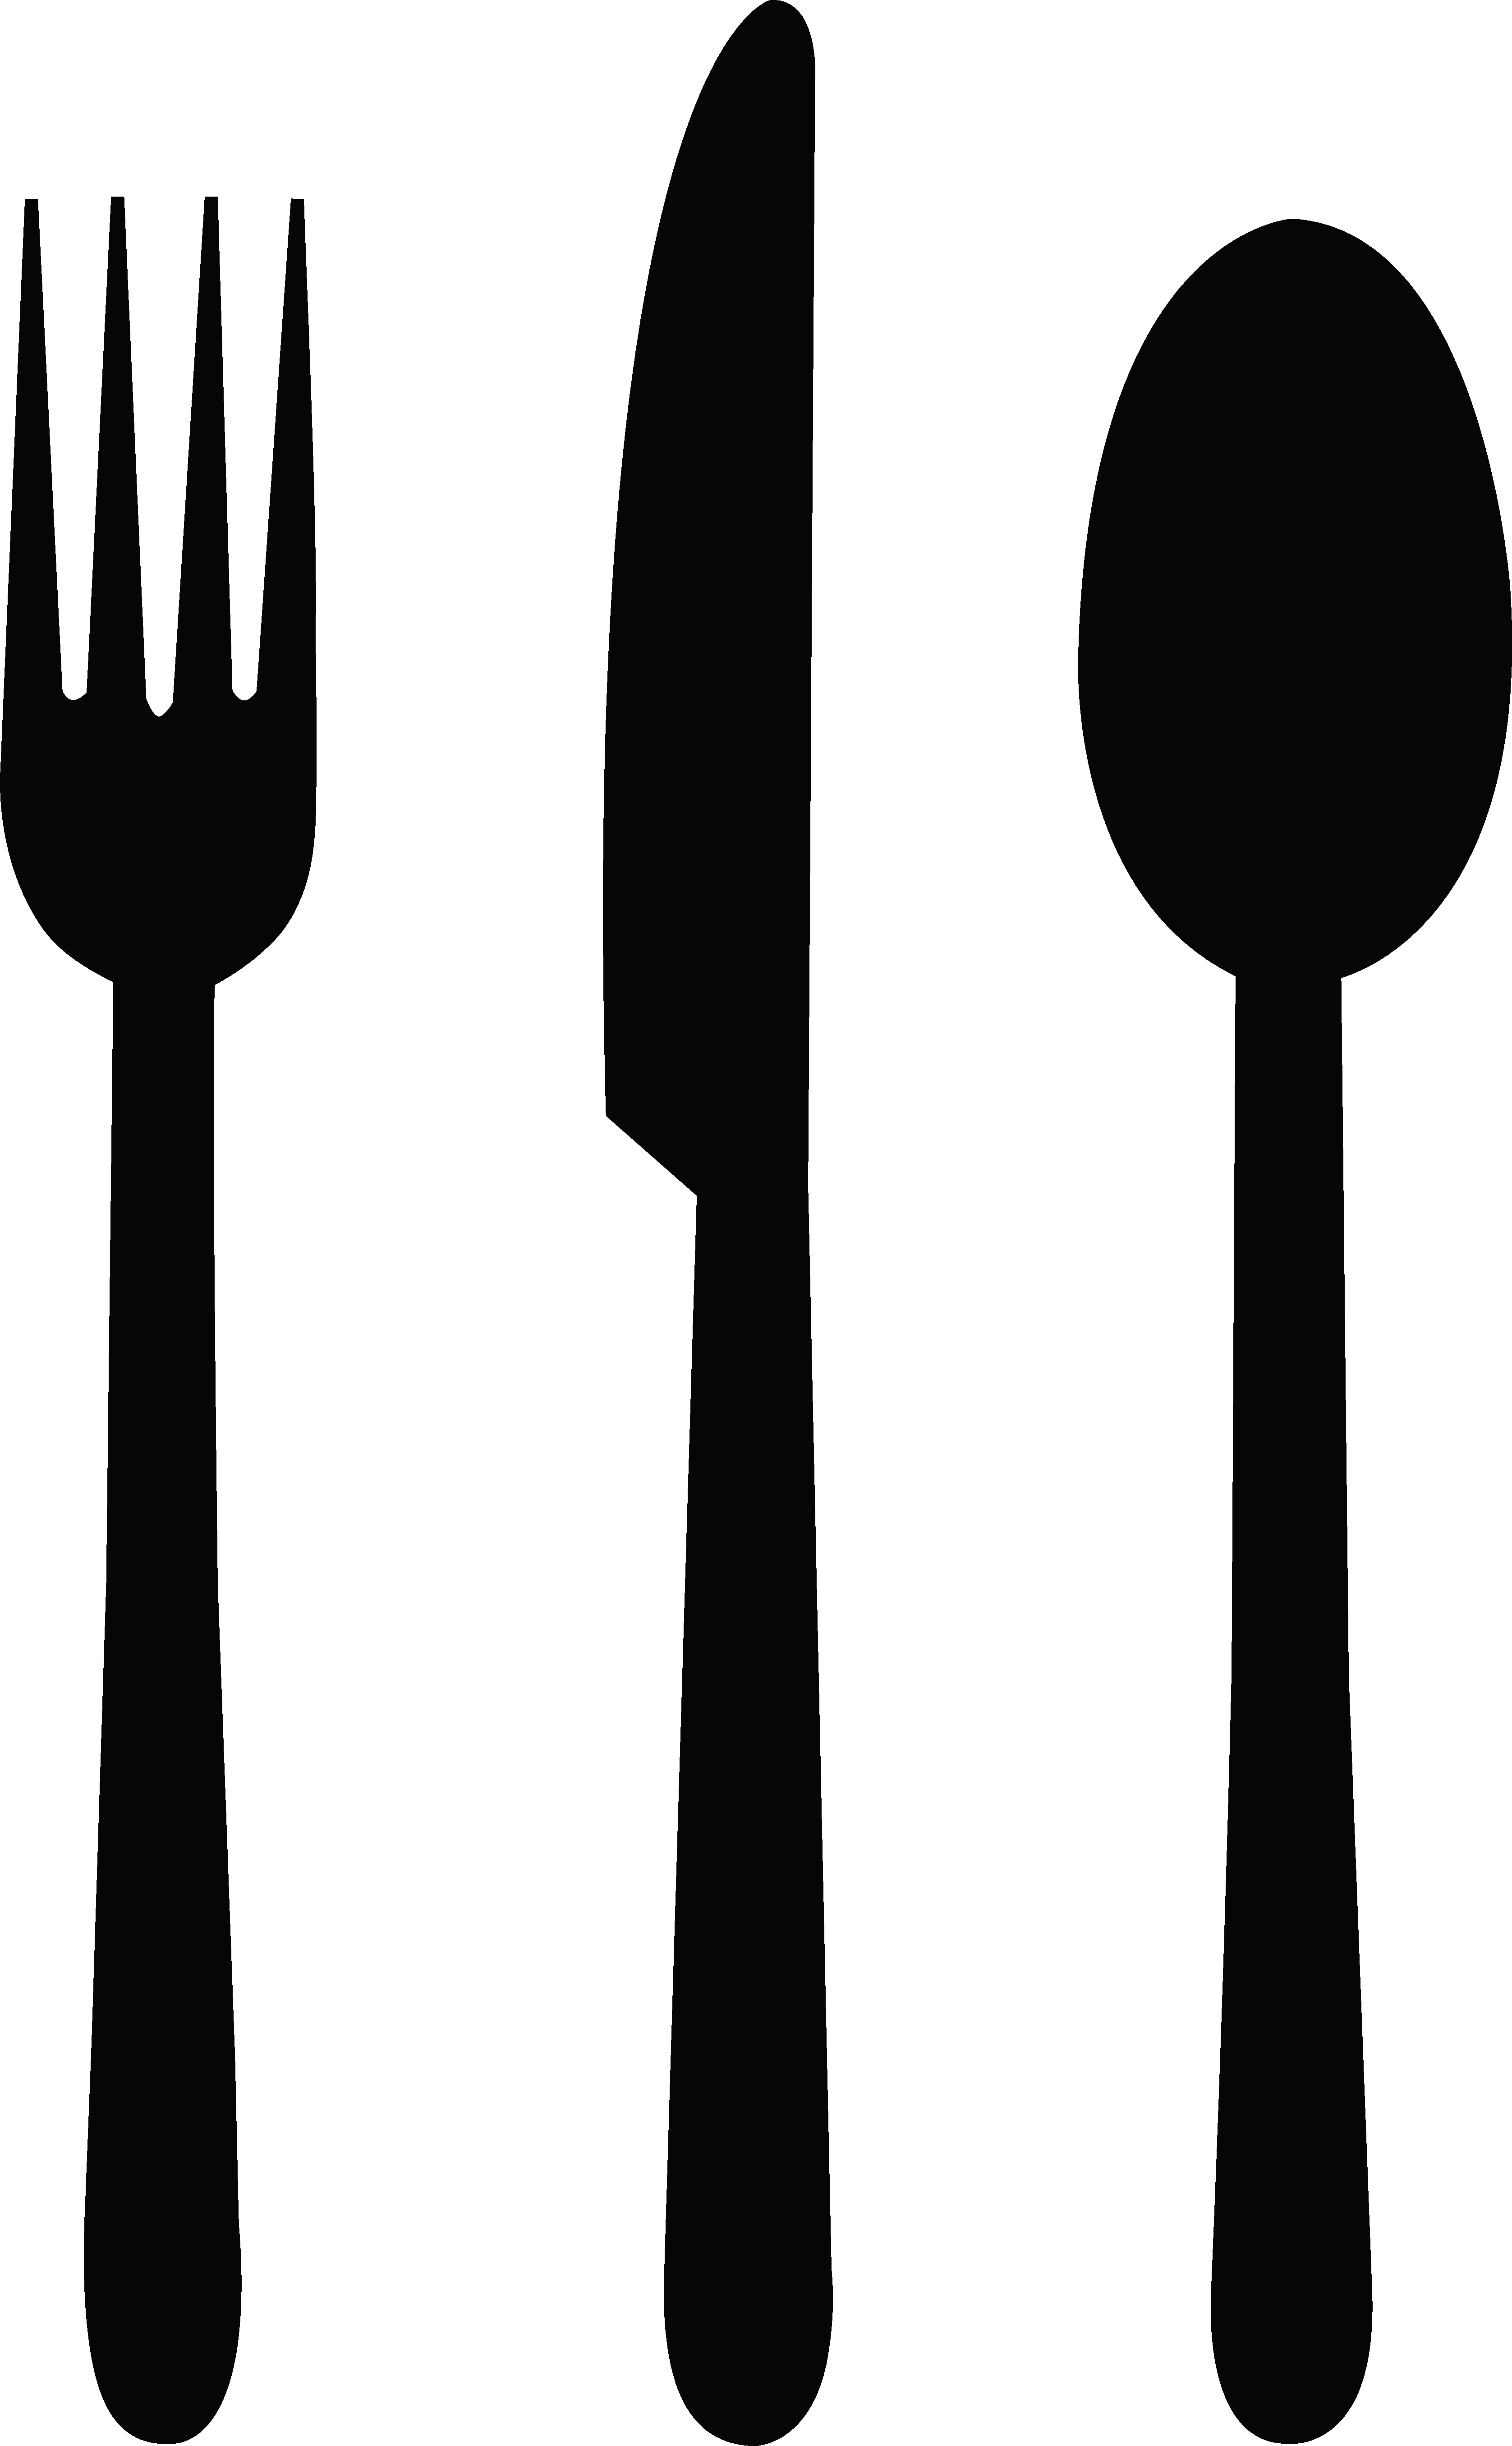 Fork Clipart Black And White Fork Clipart Fork Knife Spoon Black Png